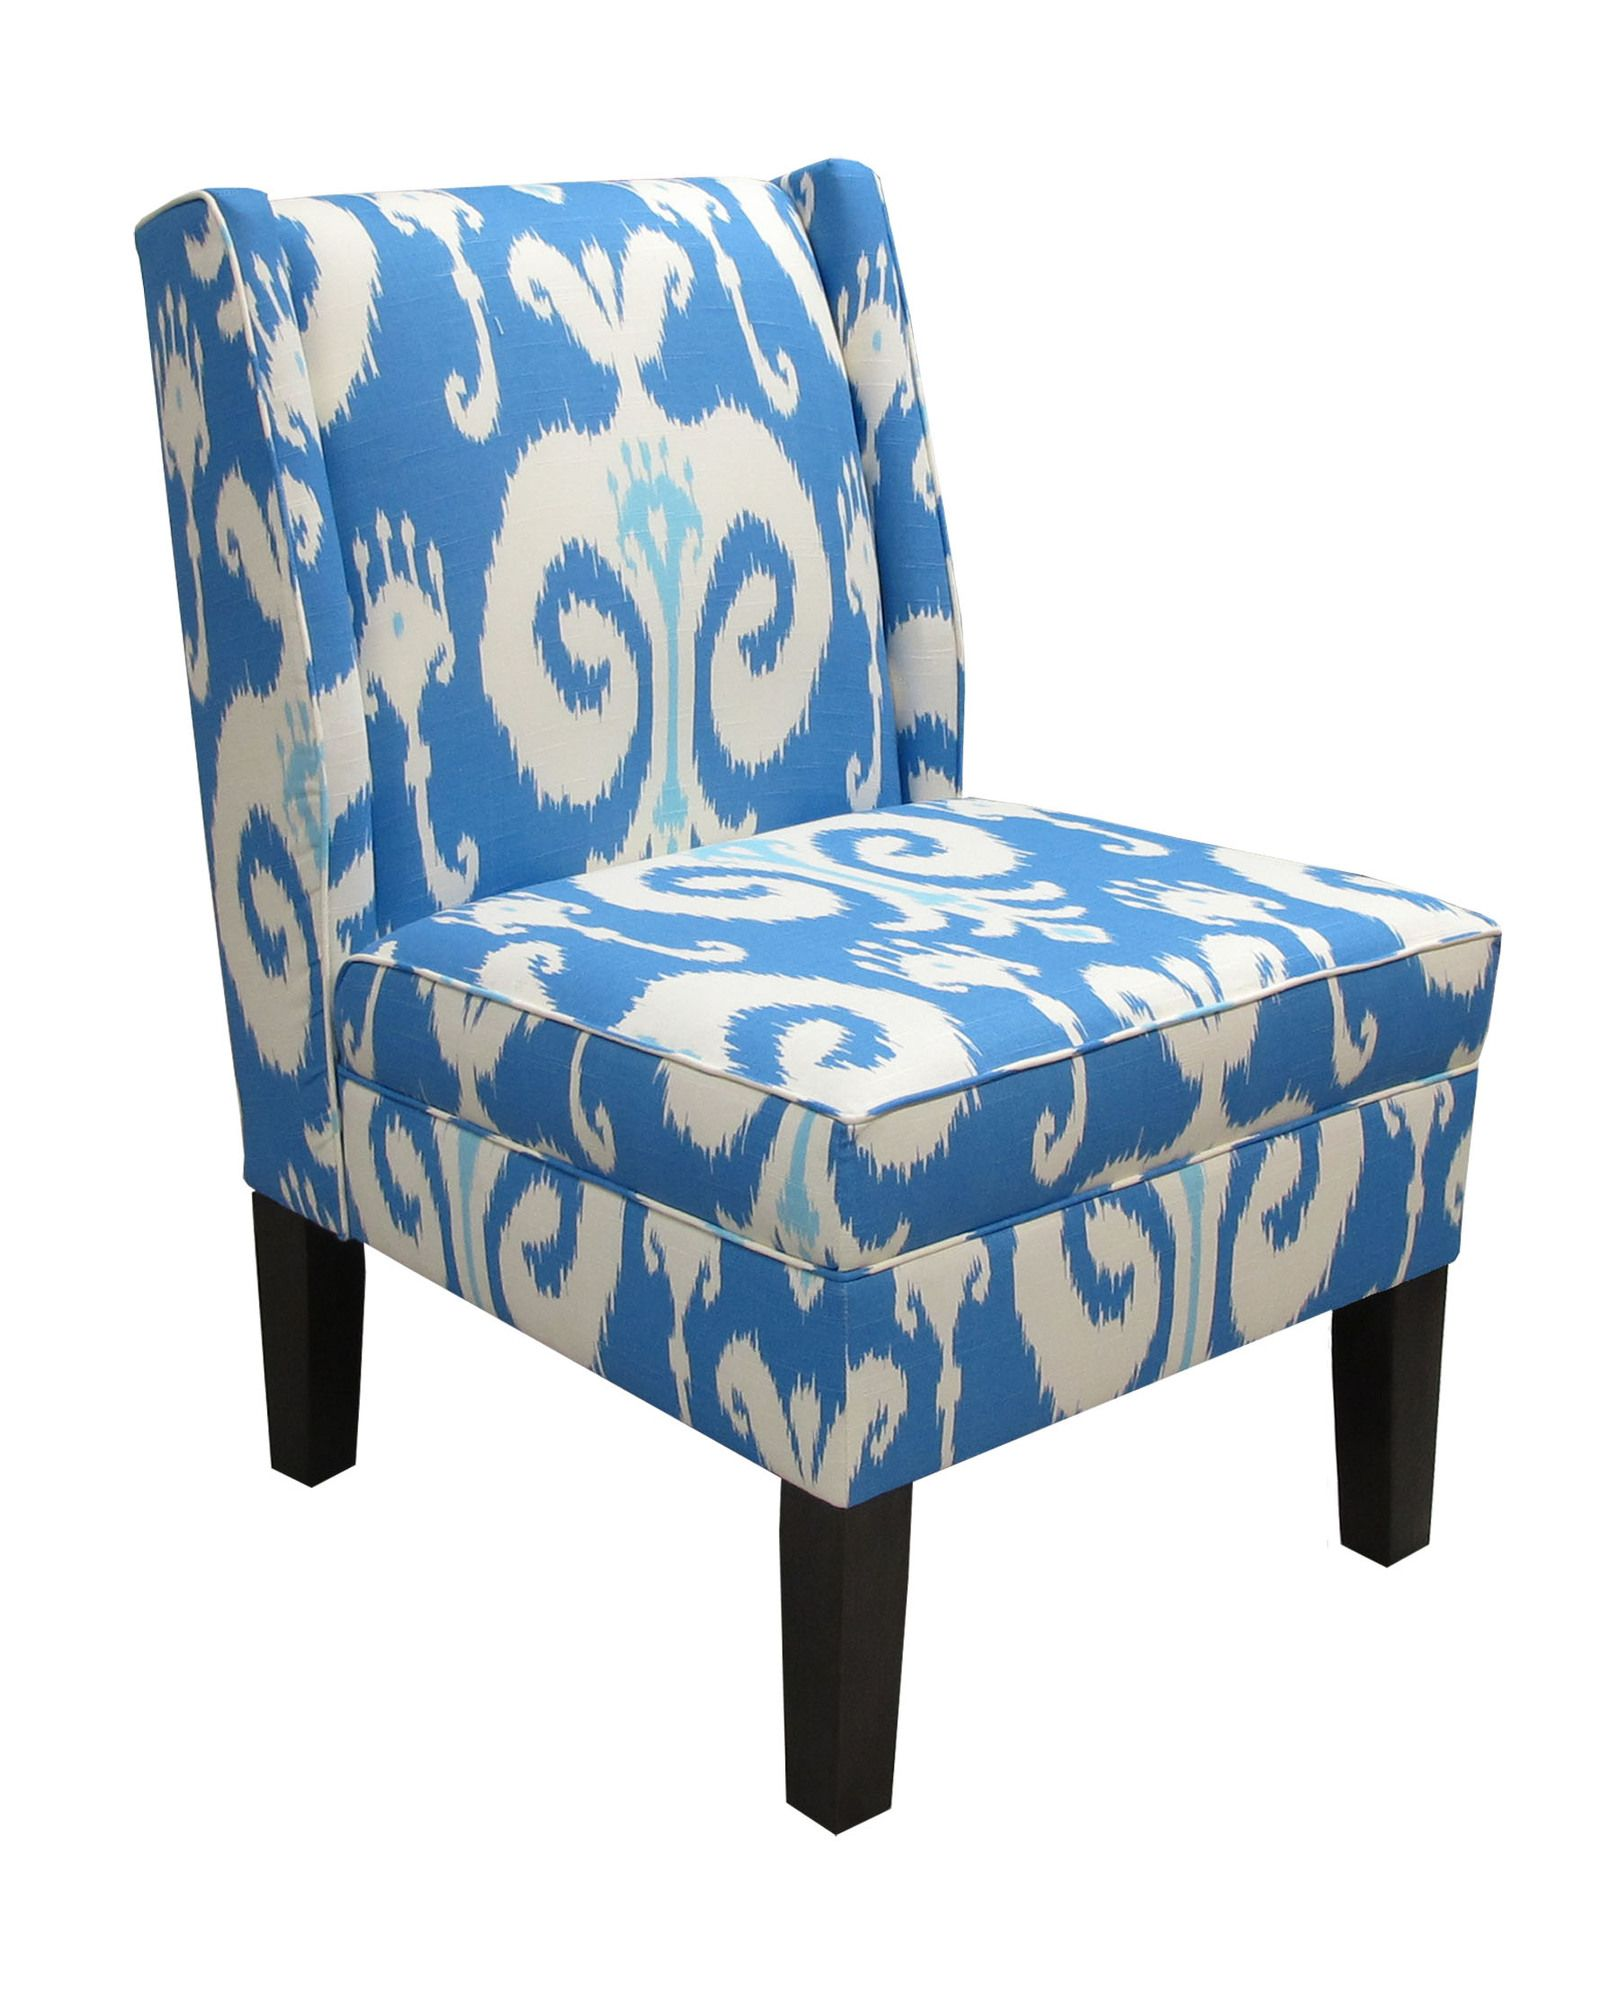 Get Living Room Accent Chairs That Could Be Used As Head Chairs For